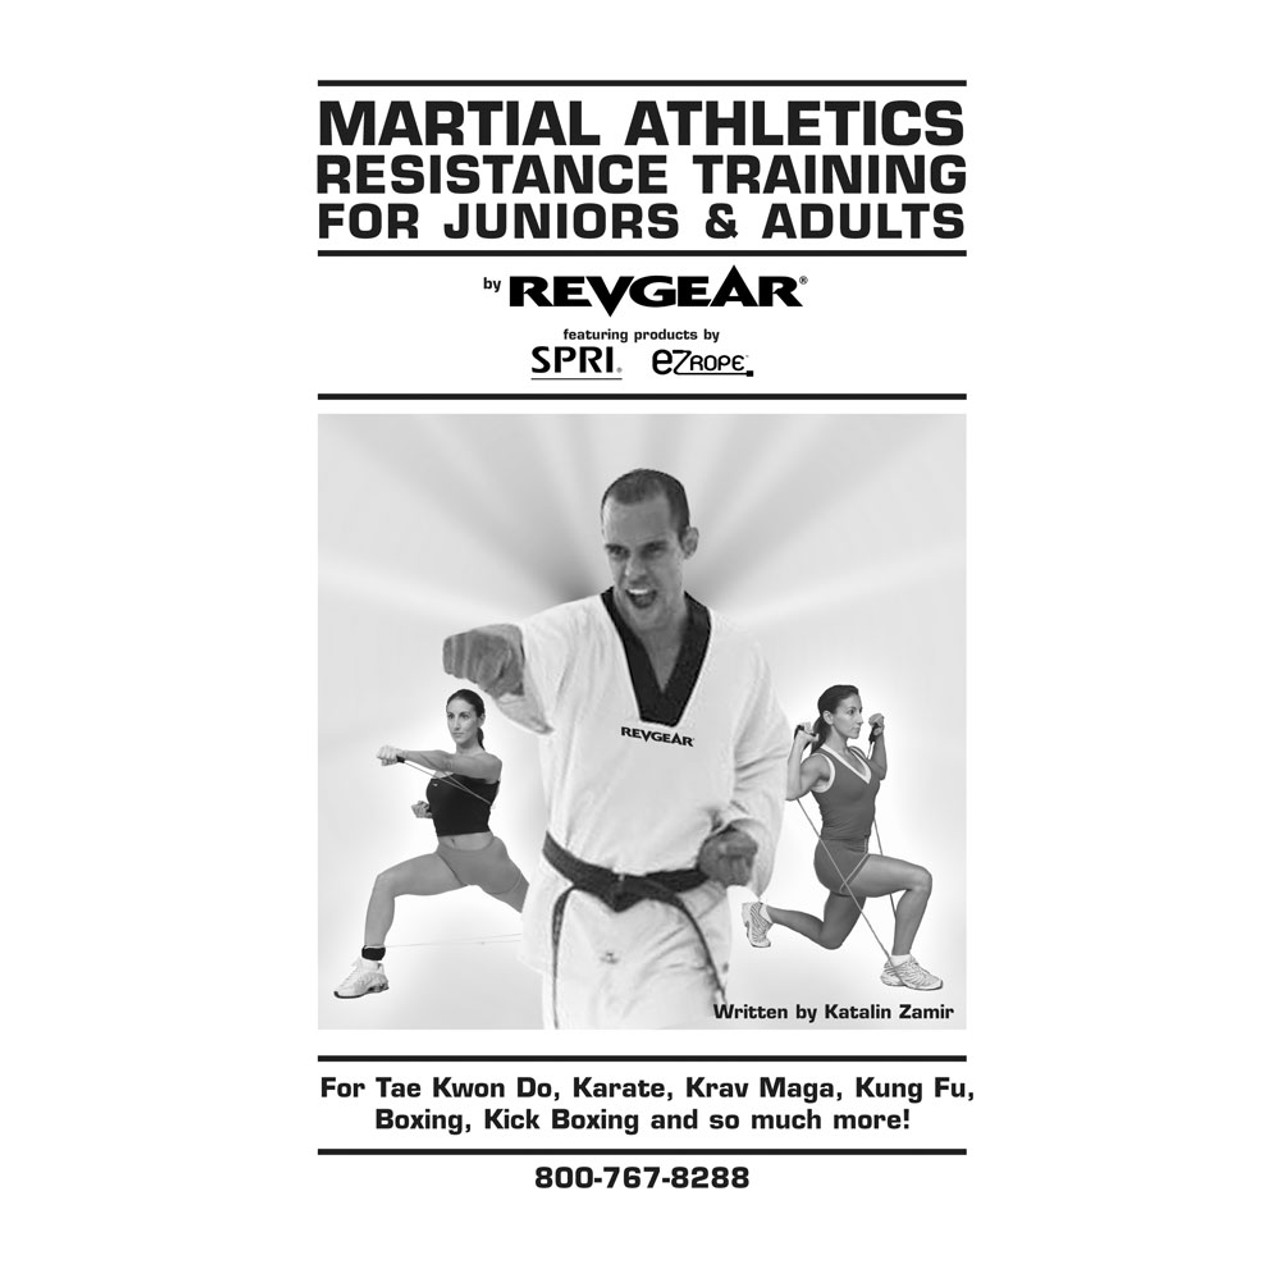 Martial Athletics Resistance Training Manual